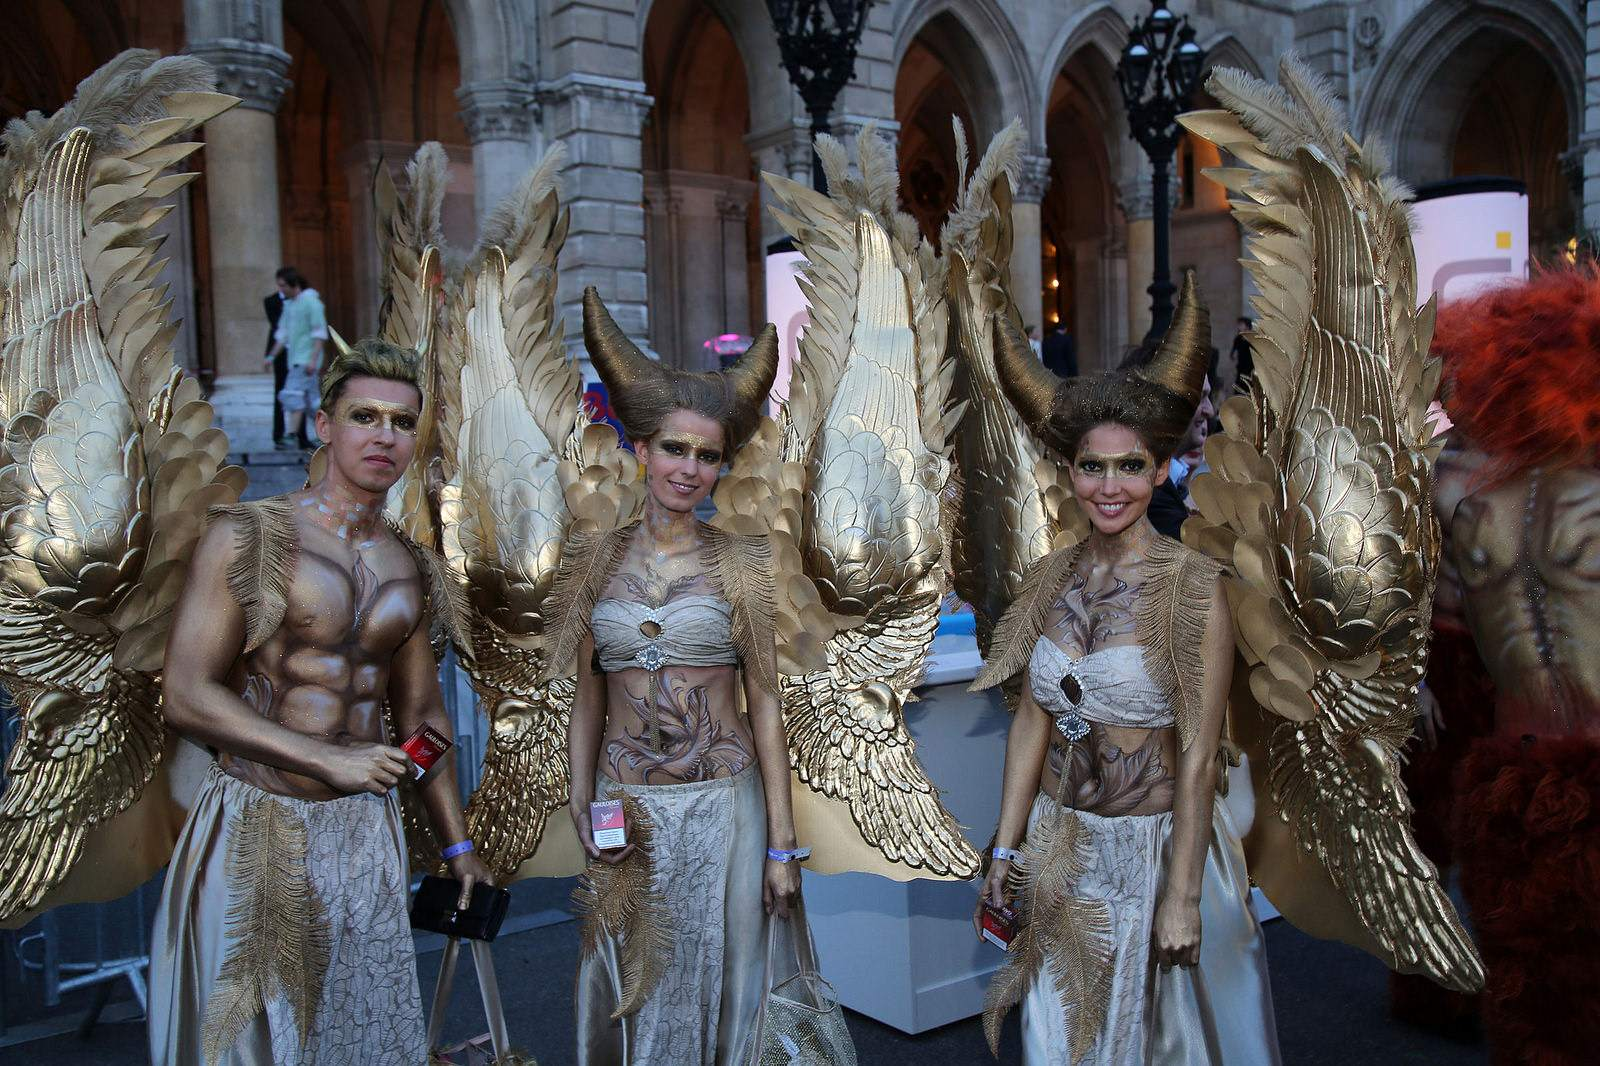 life ball6 Life Ball 2015 in Wien